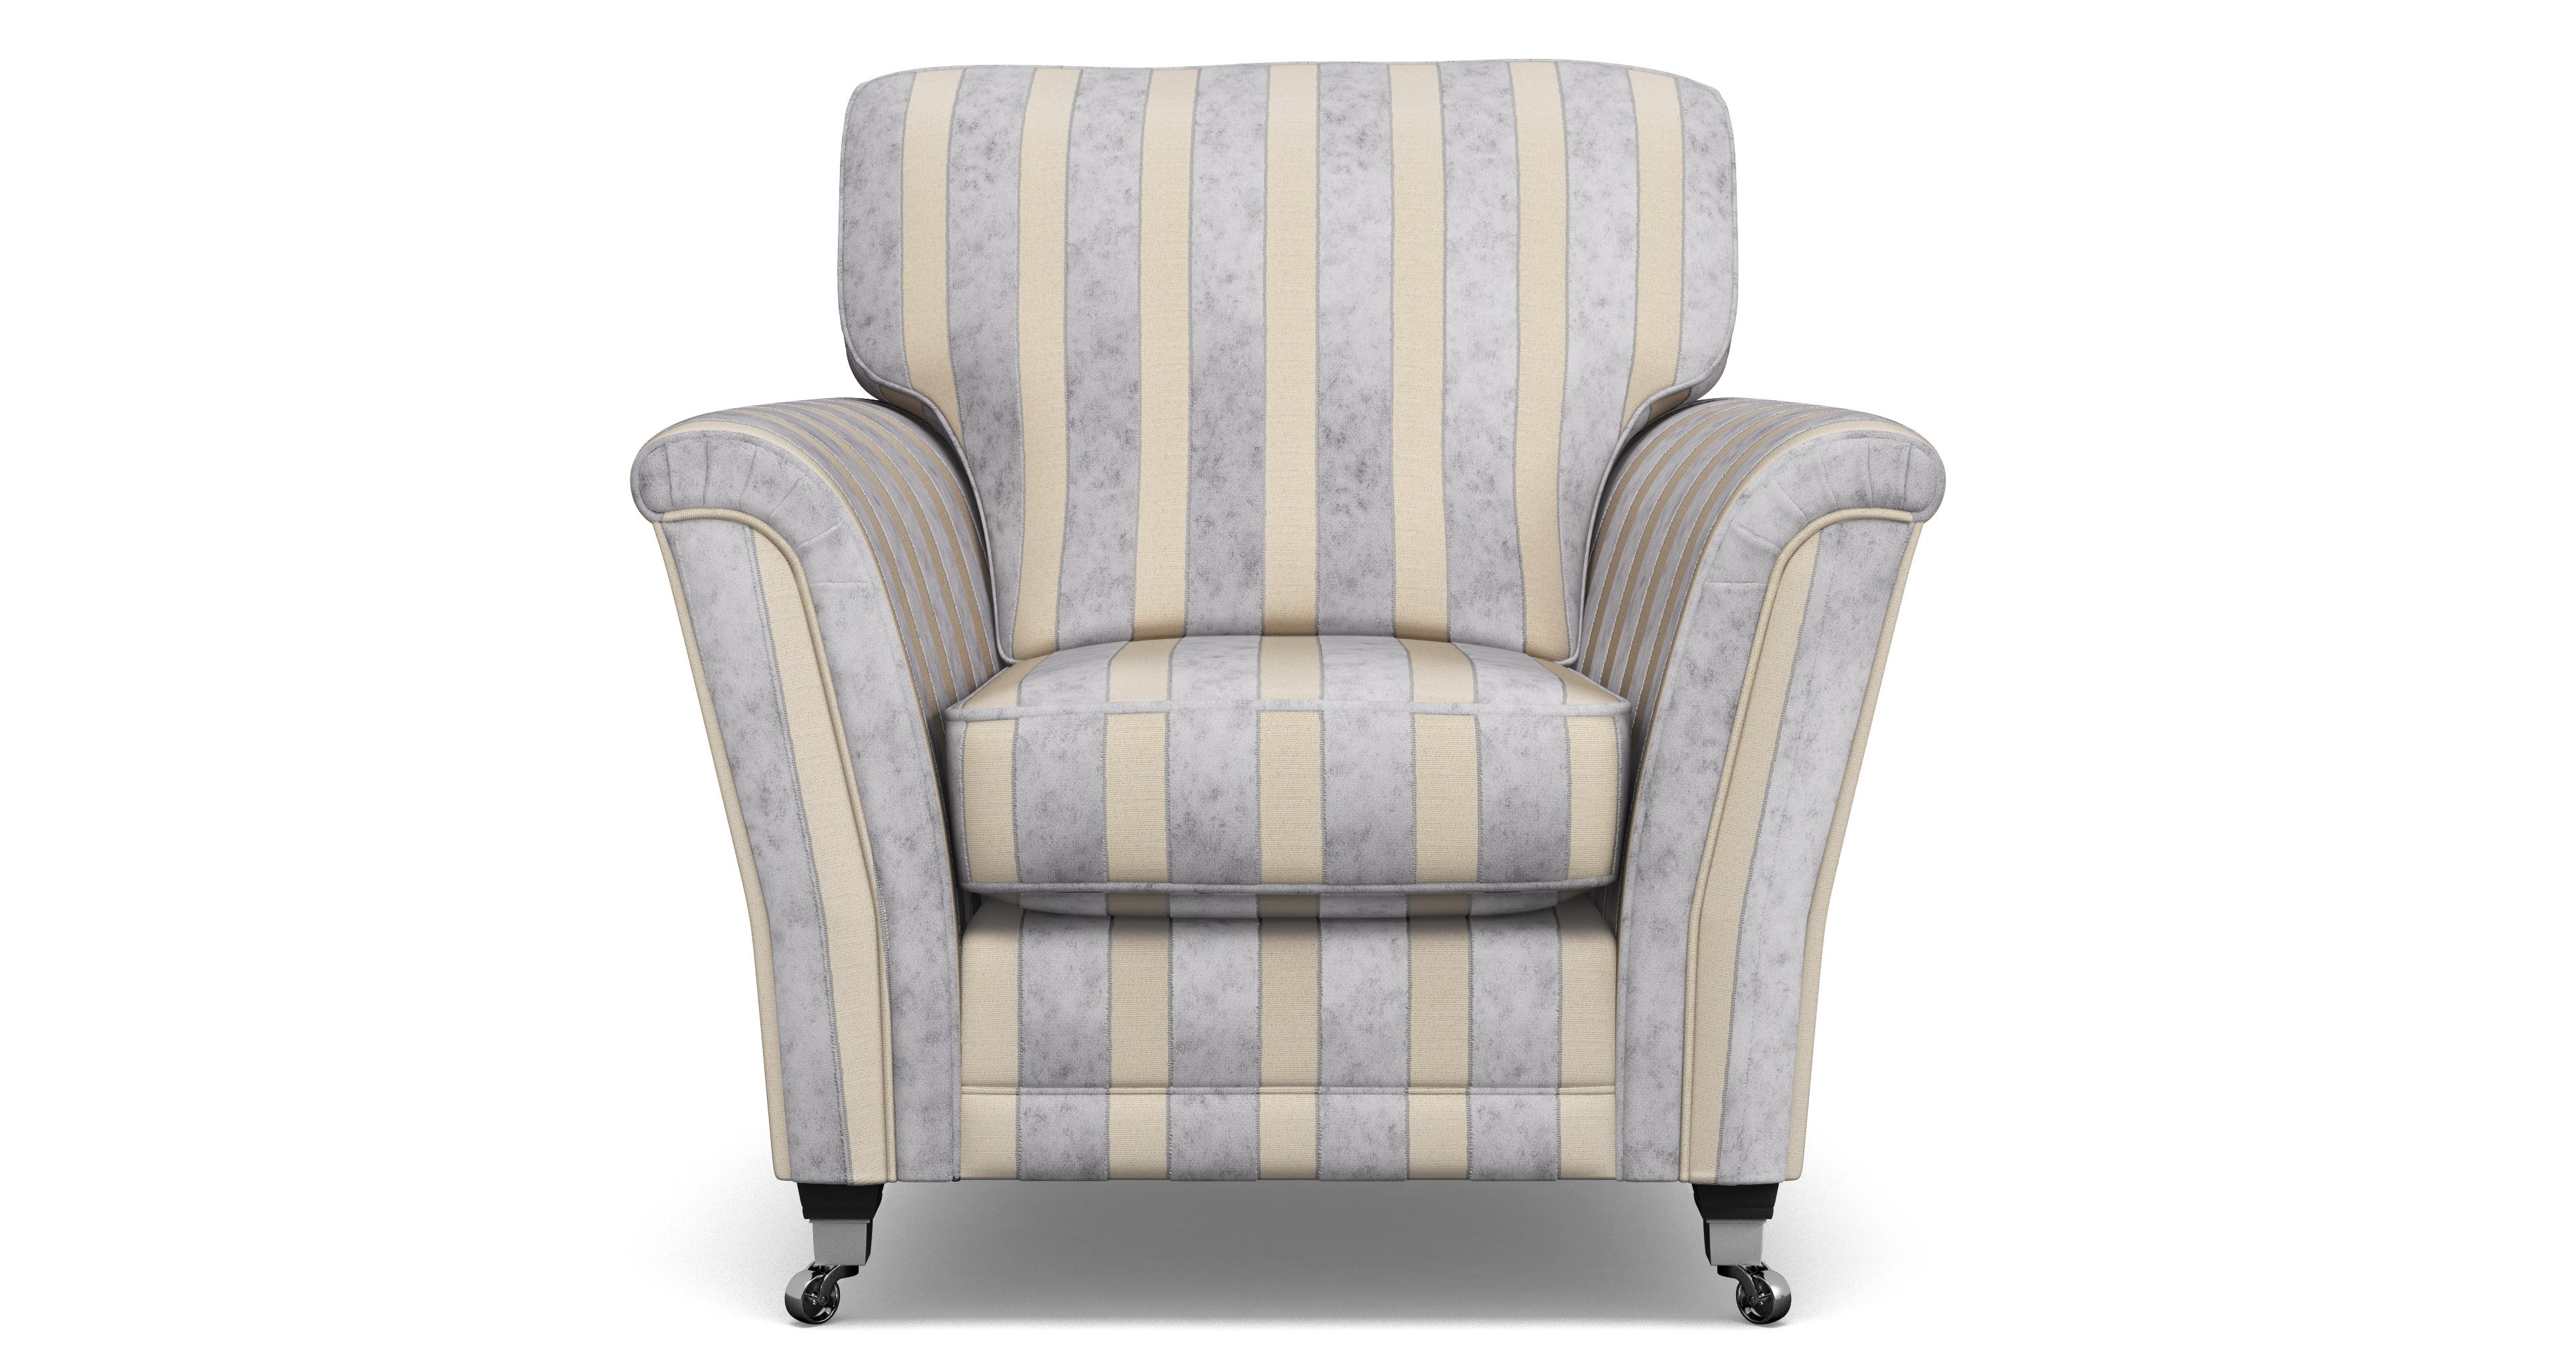 Hogarth Striped Armchair Hogarth Stripe | DFS